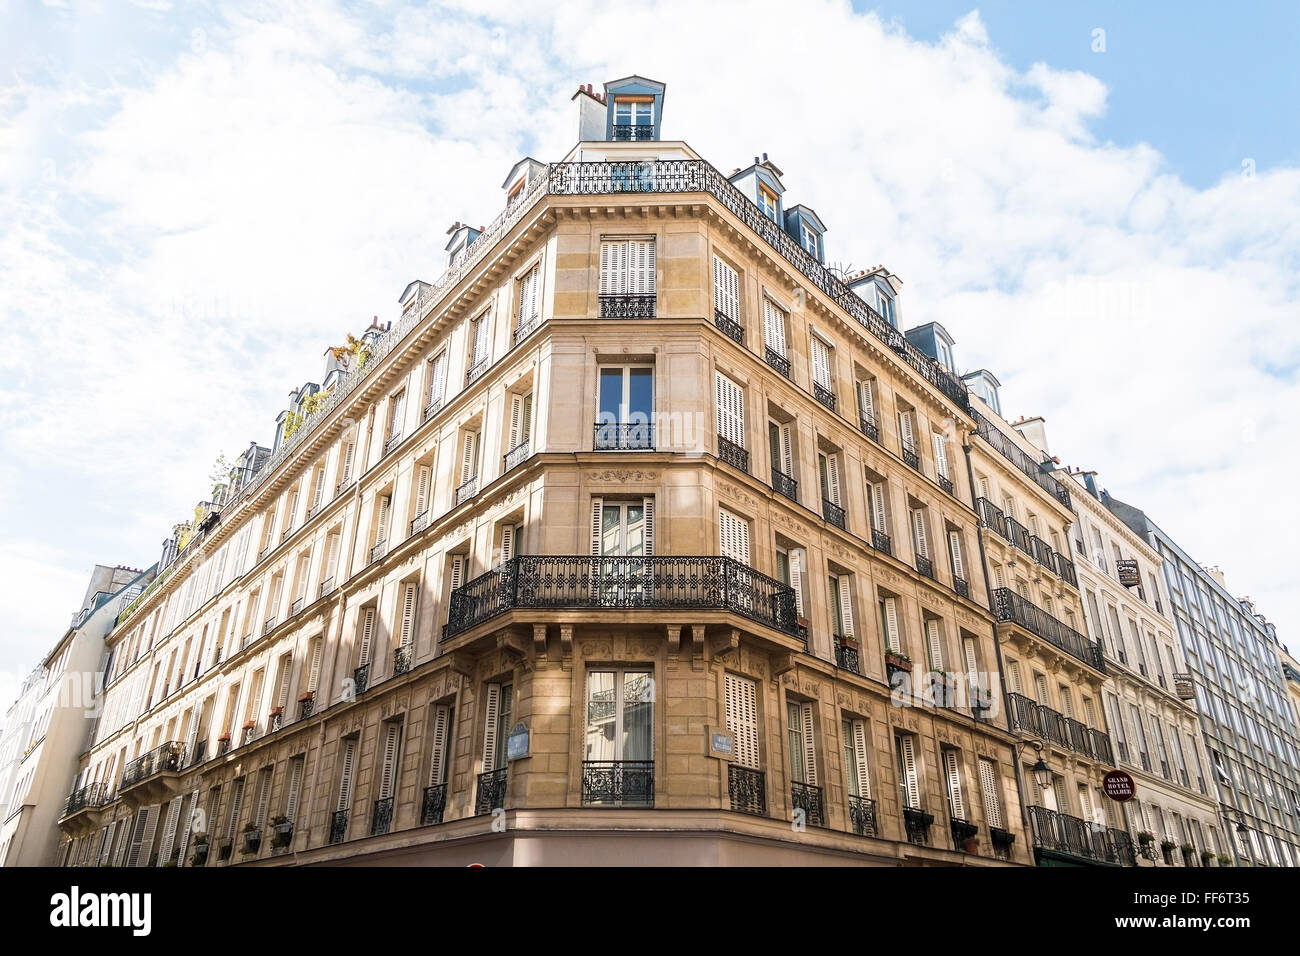 PARIS MAY 07, 2015: French architecture with apartment building looking upward at the Paris Le Marais quarter - Stock Image